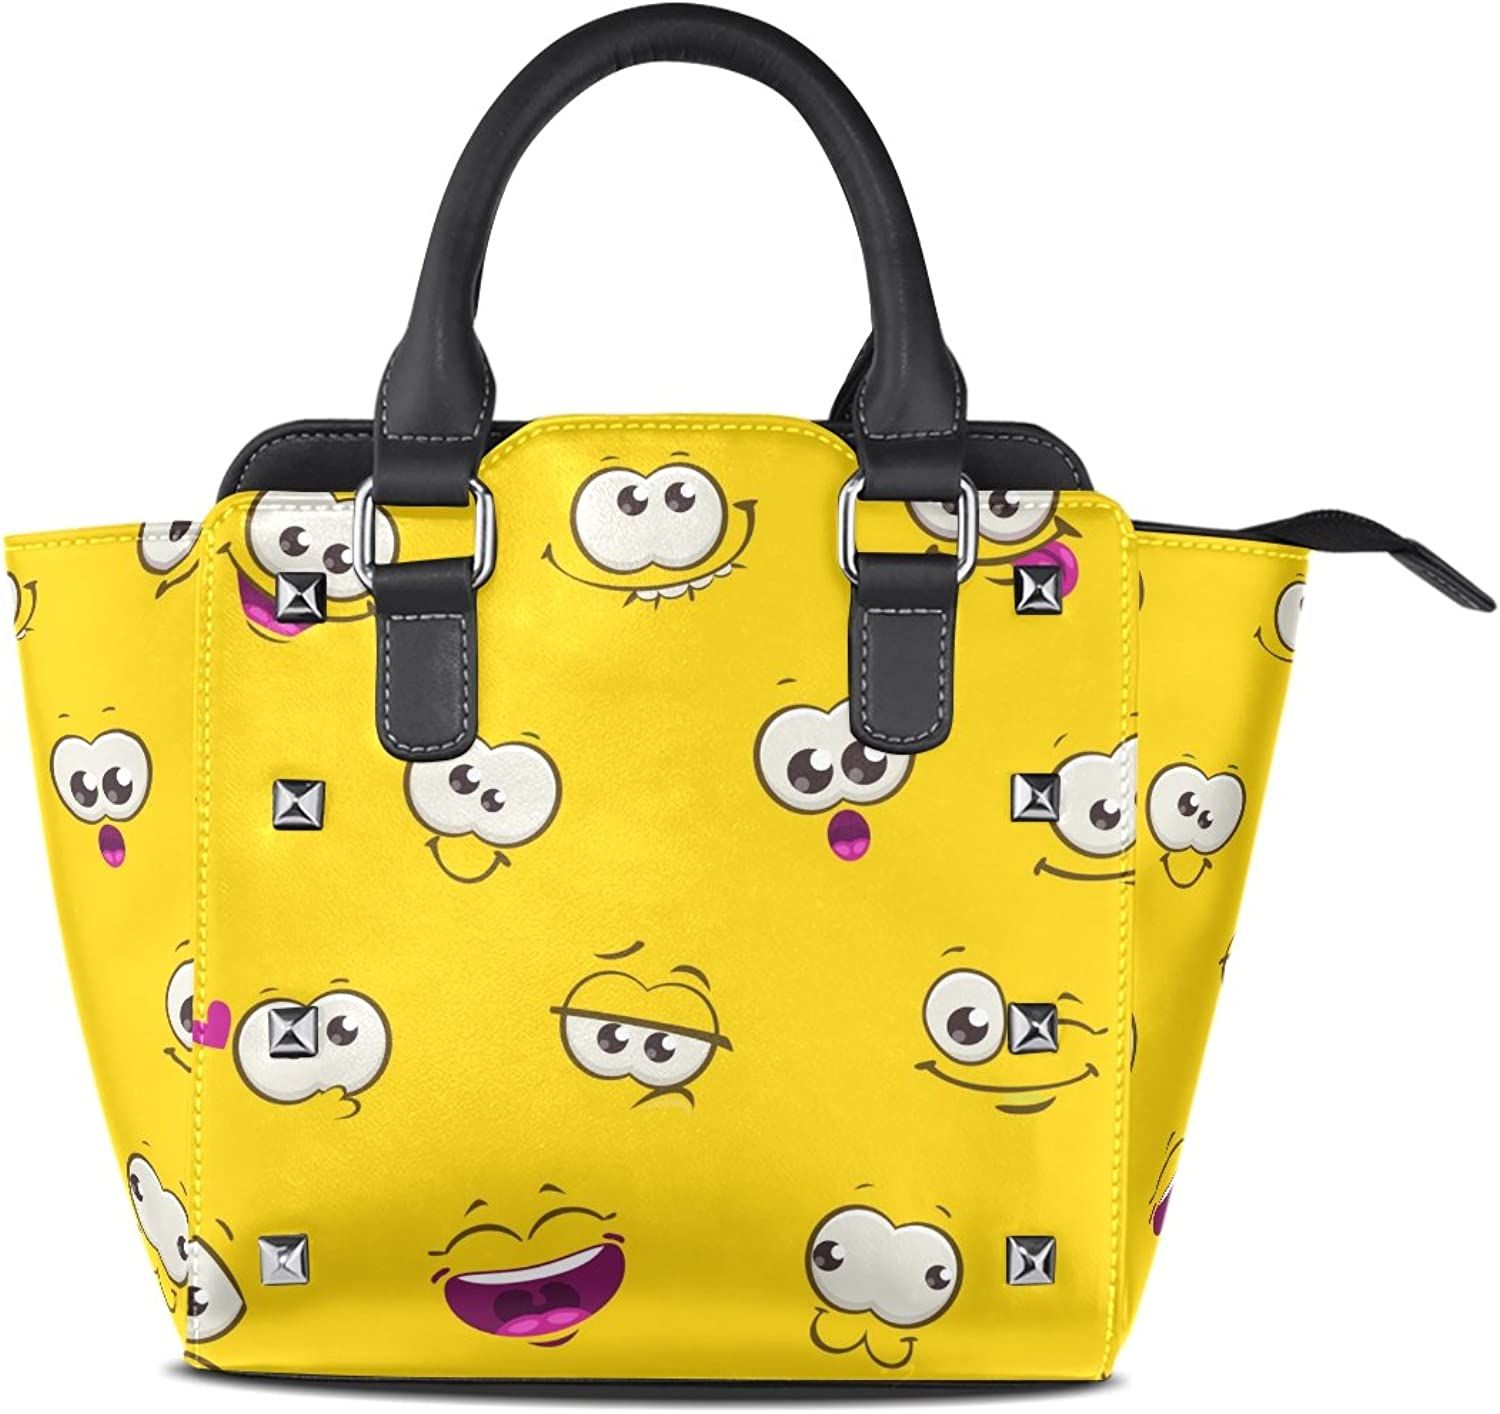 My Little Nest Women's Top Handle Satchel Handbag Yellow Funny Emojis Expressions Ladies PU Leather Shoulder Bag Crossbody Bag